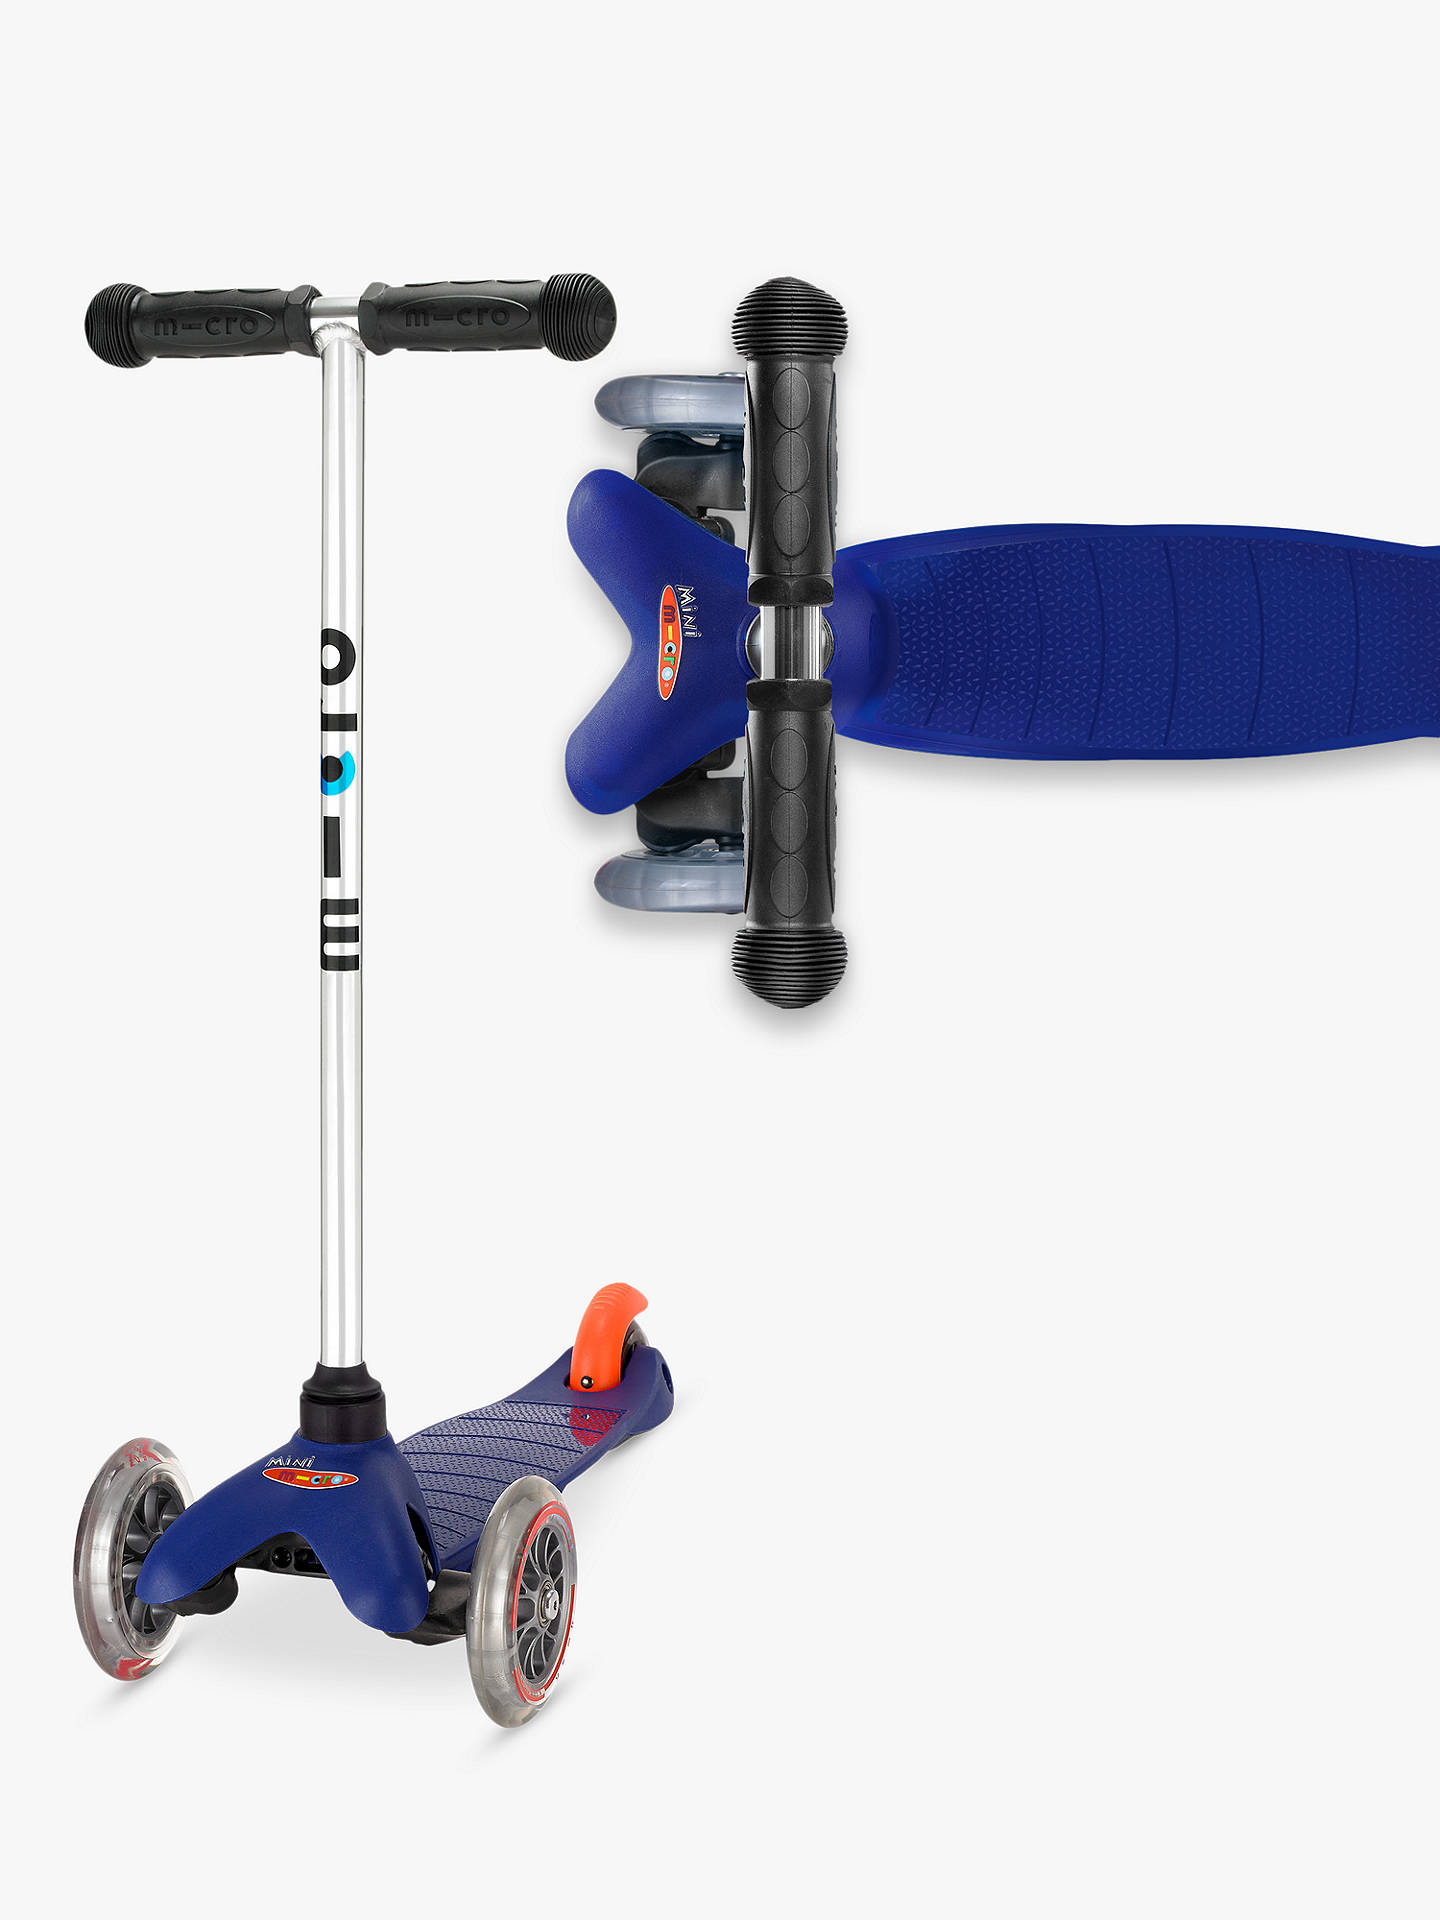 About micro Scooters